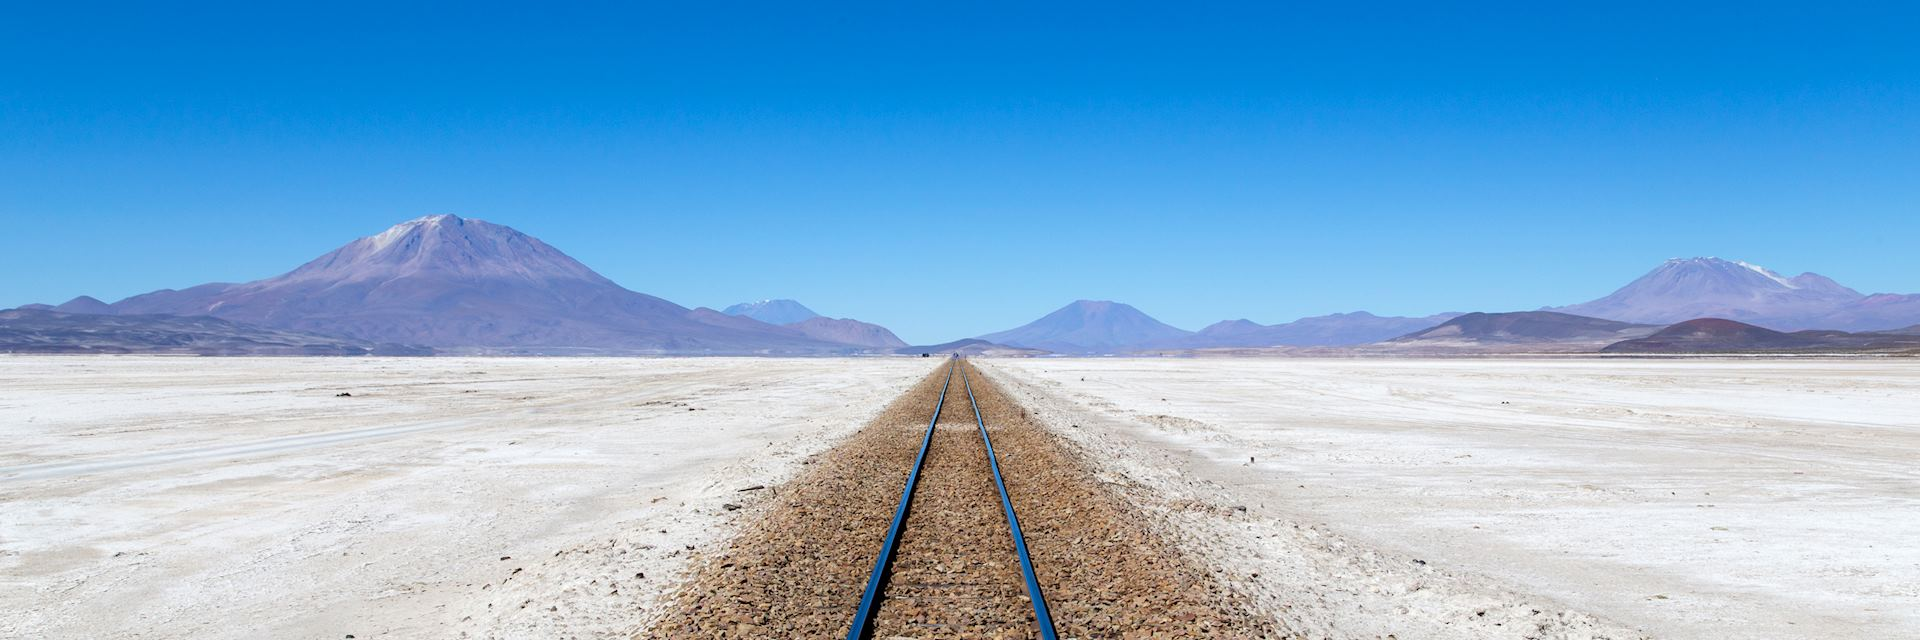 Rail tracks in Salar de Uyuni, Bolivia